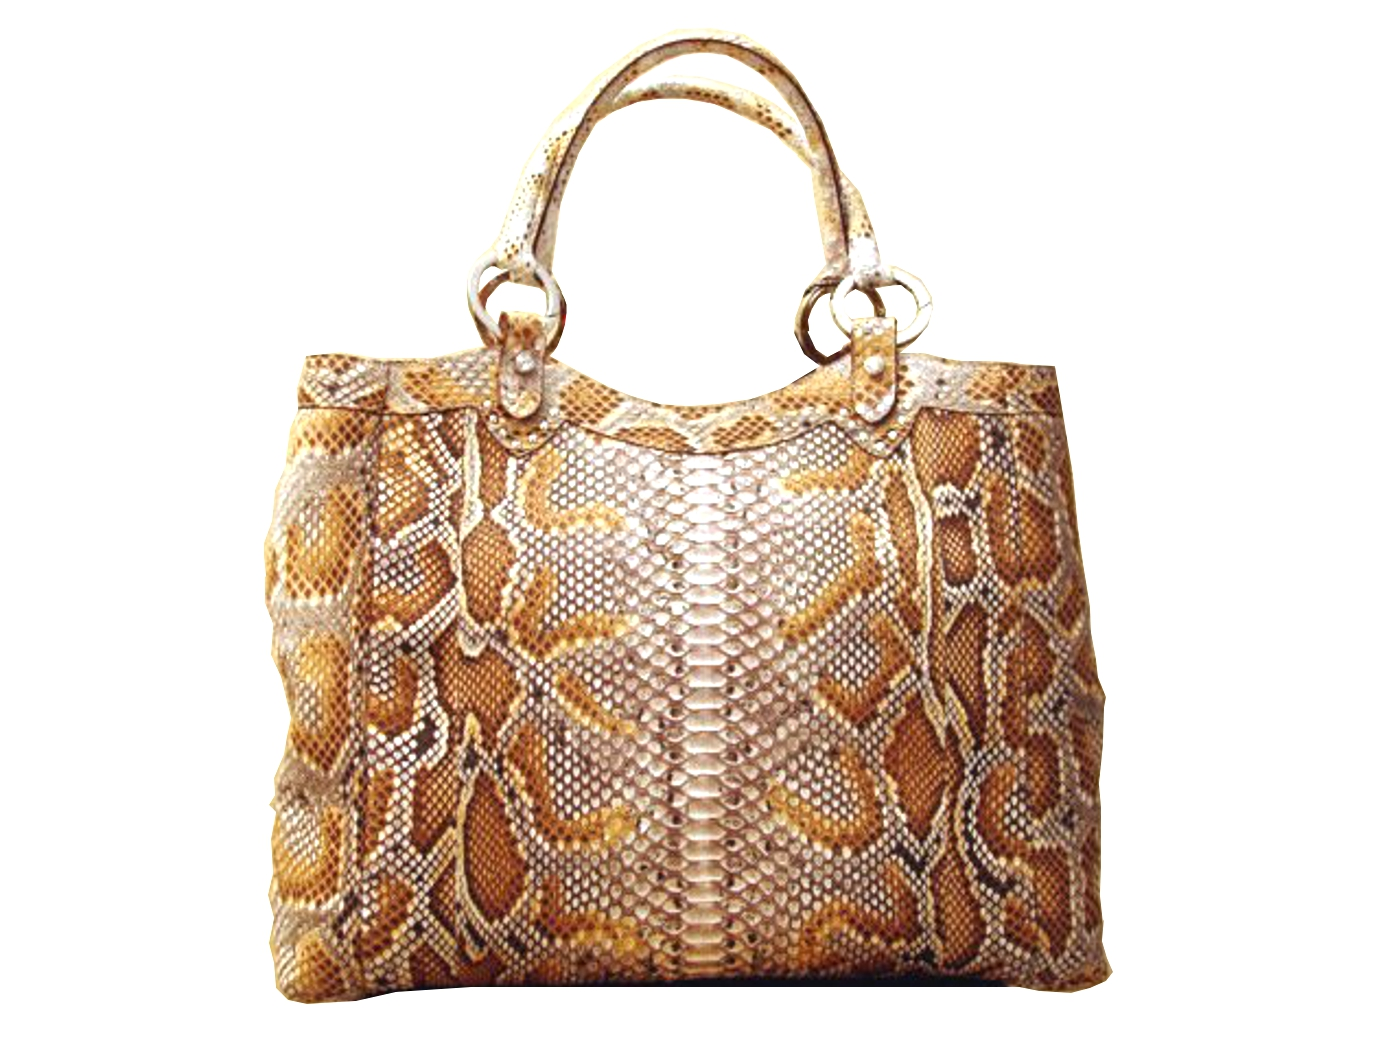 Braschi Handbag Deserto Color in Genuine Python Leather!